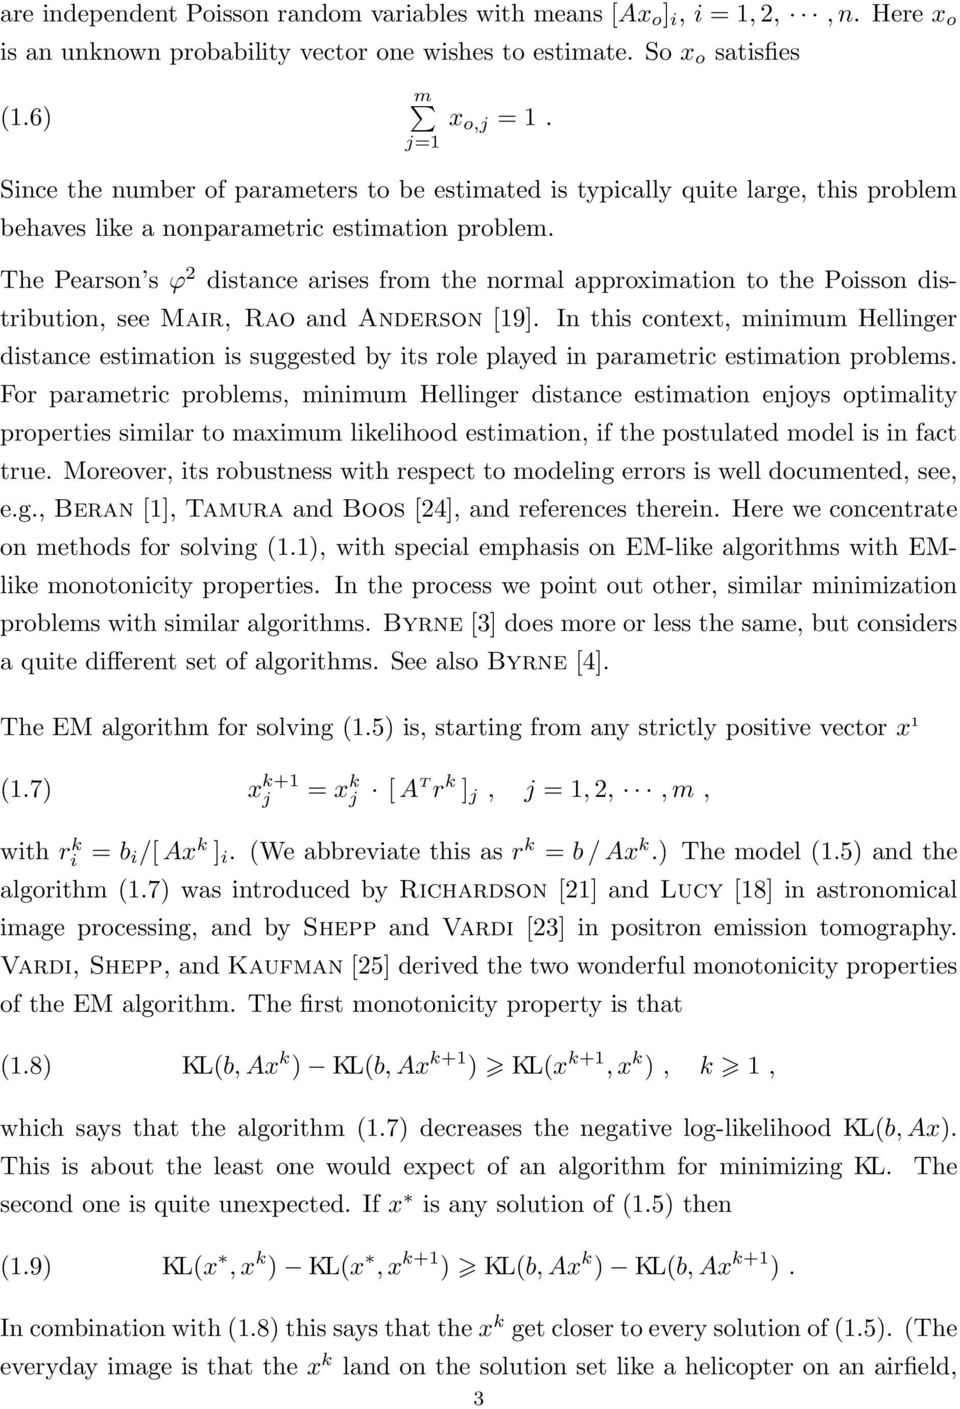 distribution, see Mair, Rao and Anderson [19] In this context, minimum Hellinger distance estimation is suggested by its role played in parametric estimation problems For parametric problems, minimum